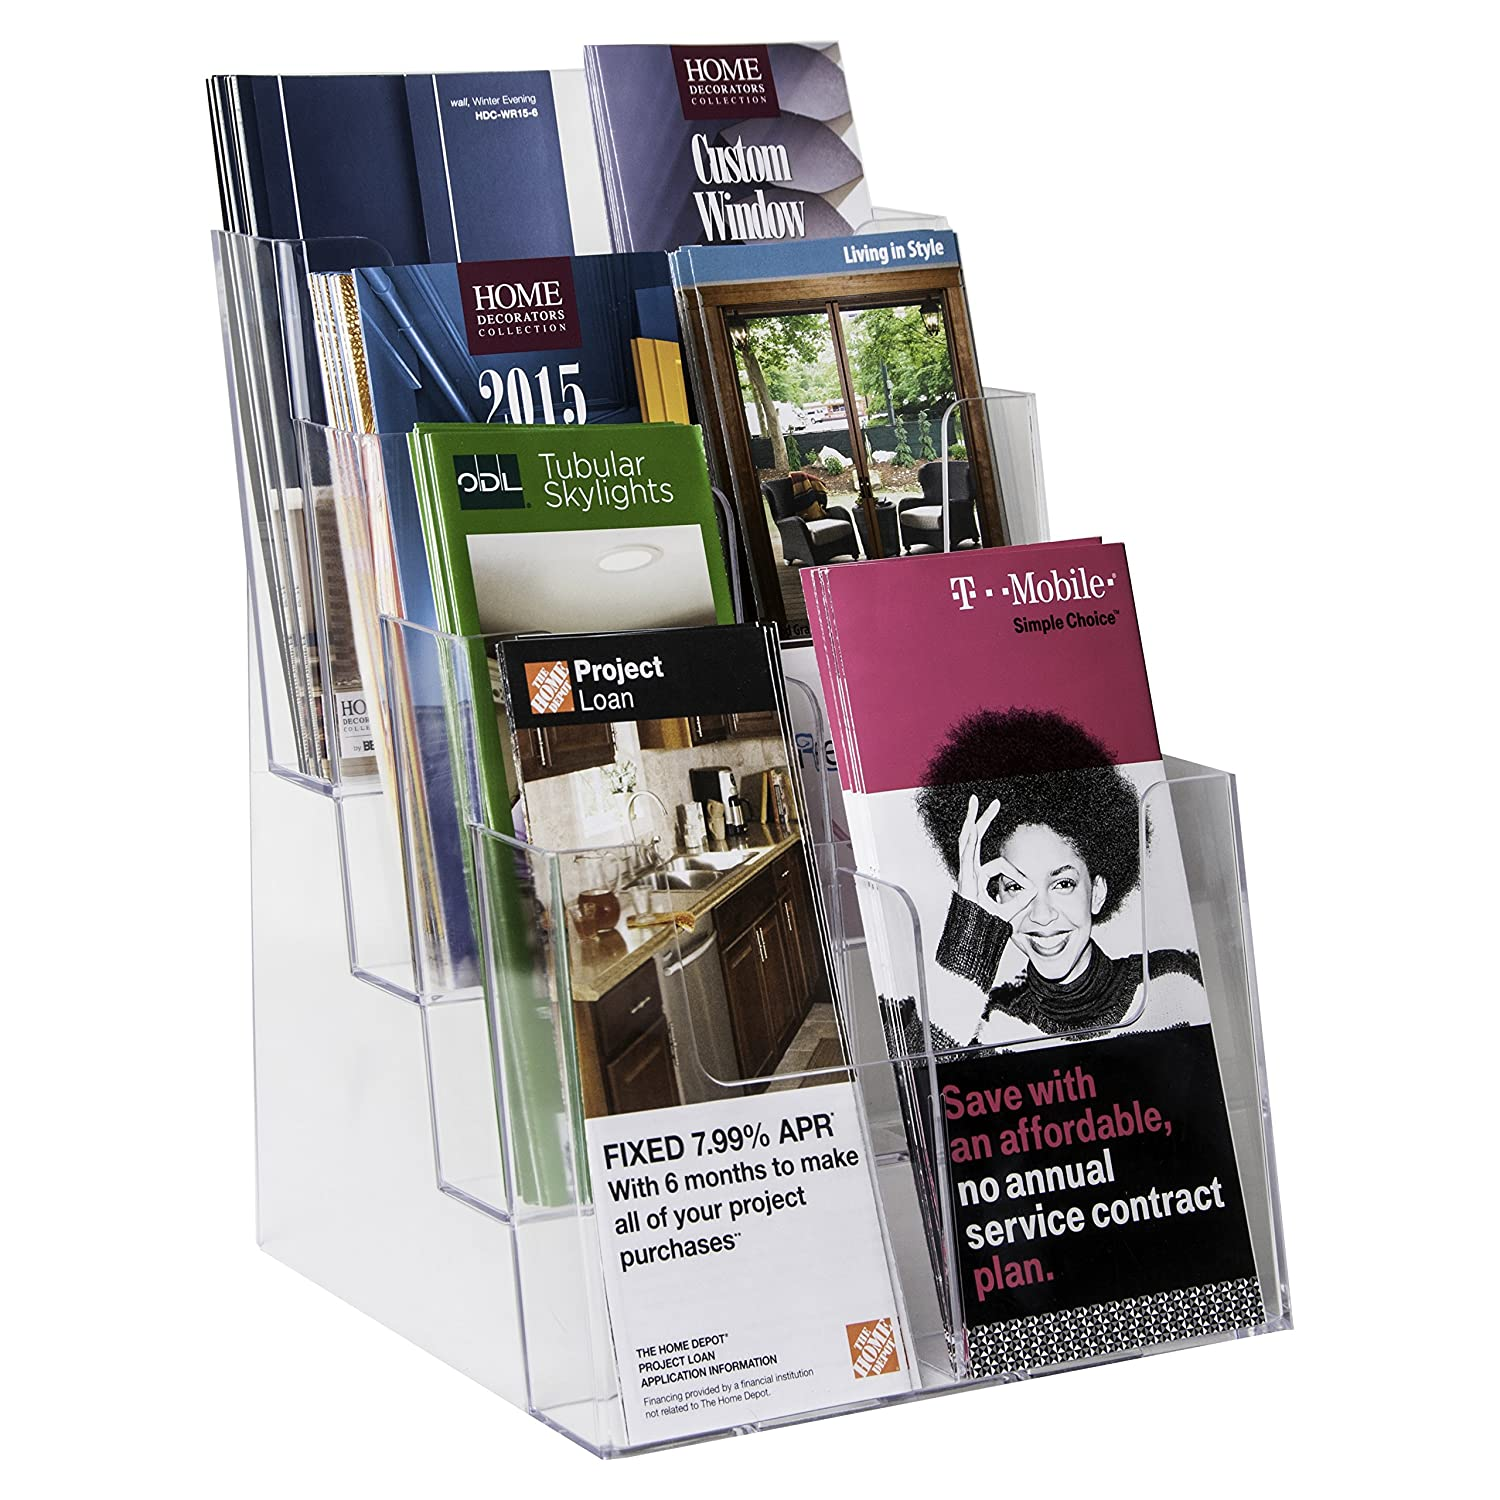 Clear-Ad - LHF-S84 - Plastic Rack Card Literature Display Holder - Acrylic 4 Tier 8 Pocket Brochure Organizer - Desktop or Wall Mount Leaflet Rack - Tabletop Multiple Pamphlet Stand 8.5x11 (Pack of 4)